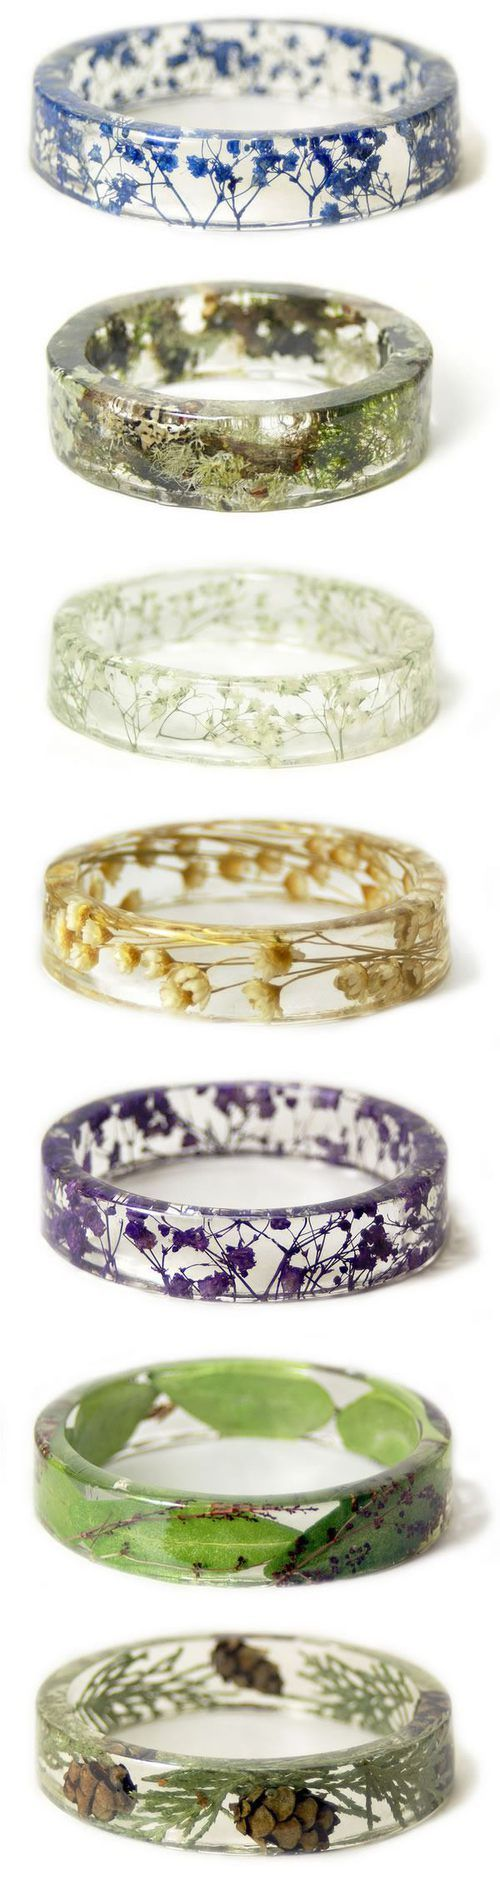 Love these rings with actual flowers inside them. :D